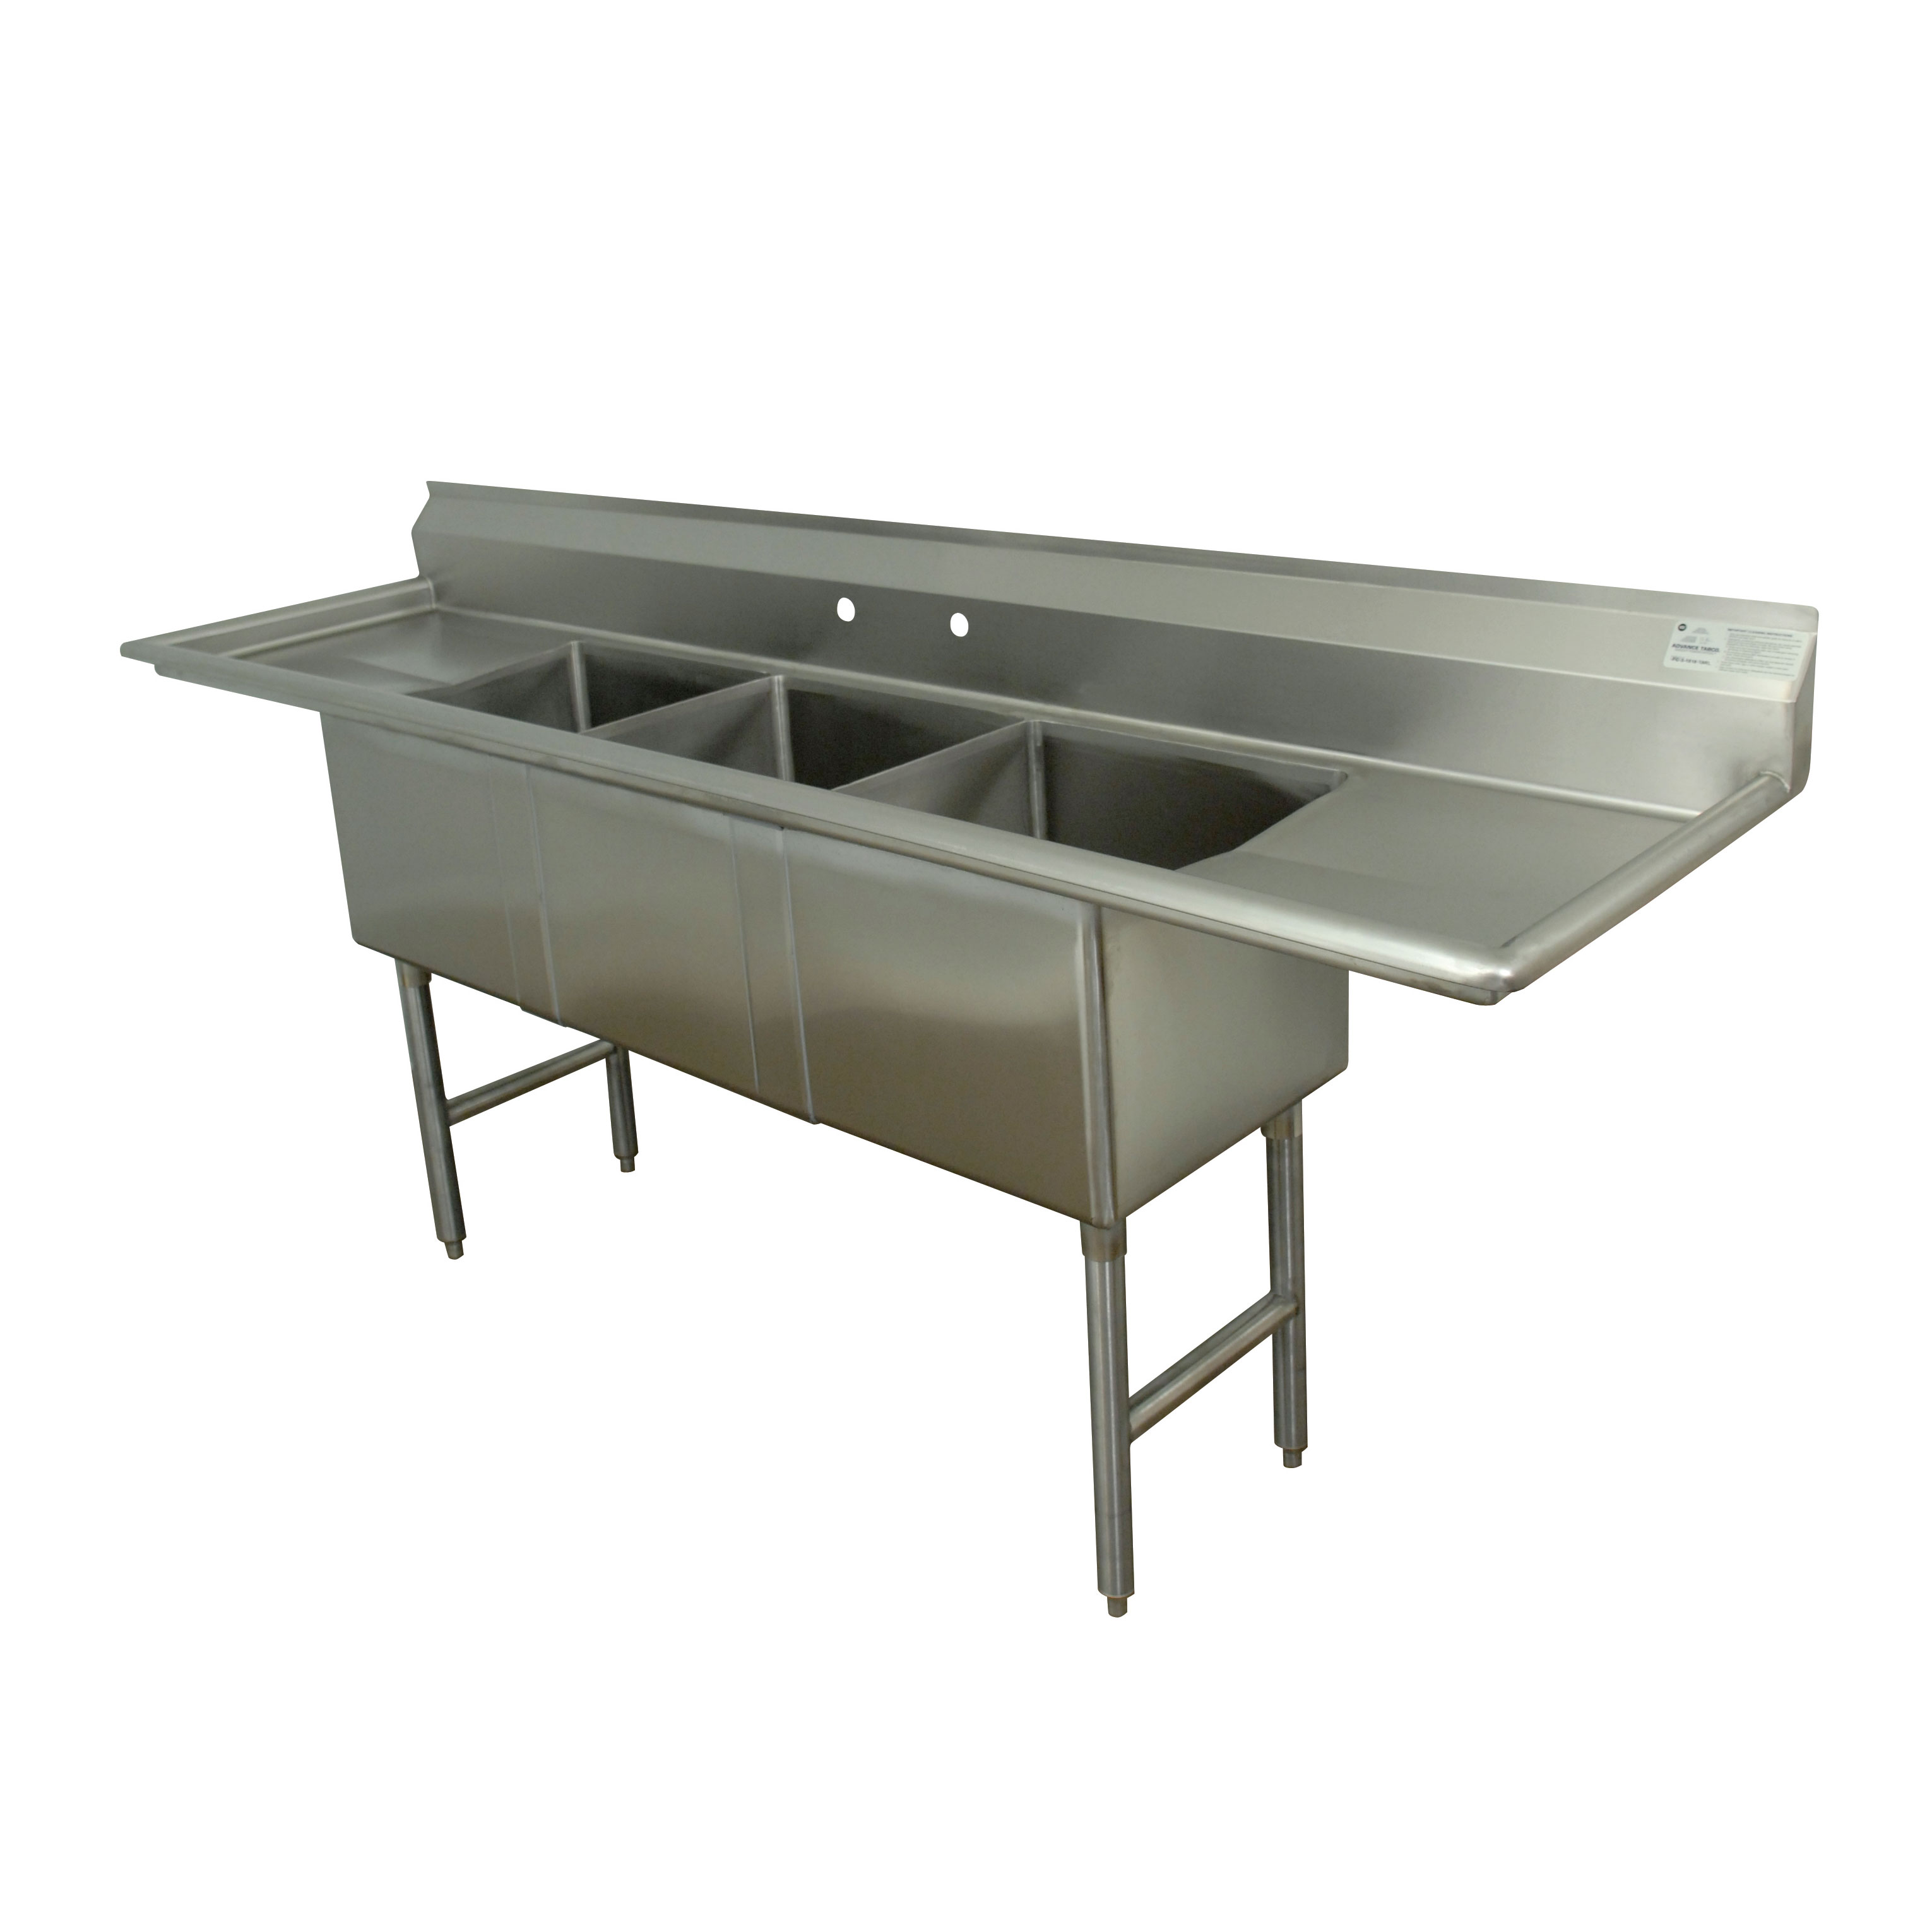 Advance Tabco FC-3-3024-36RL sink, (3) three compartment